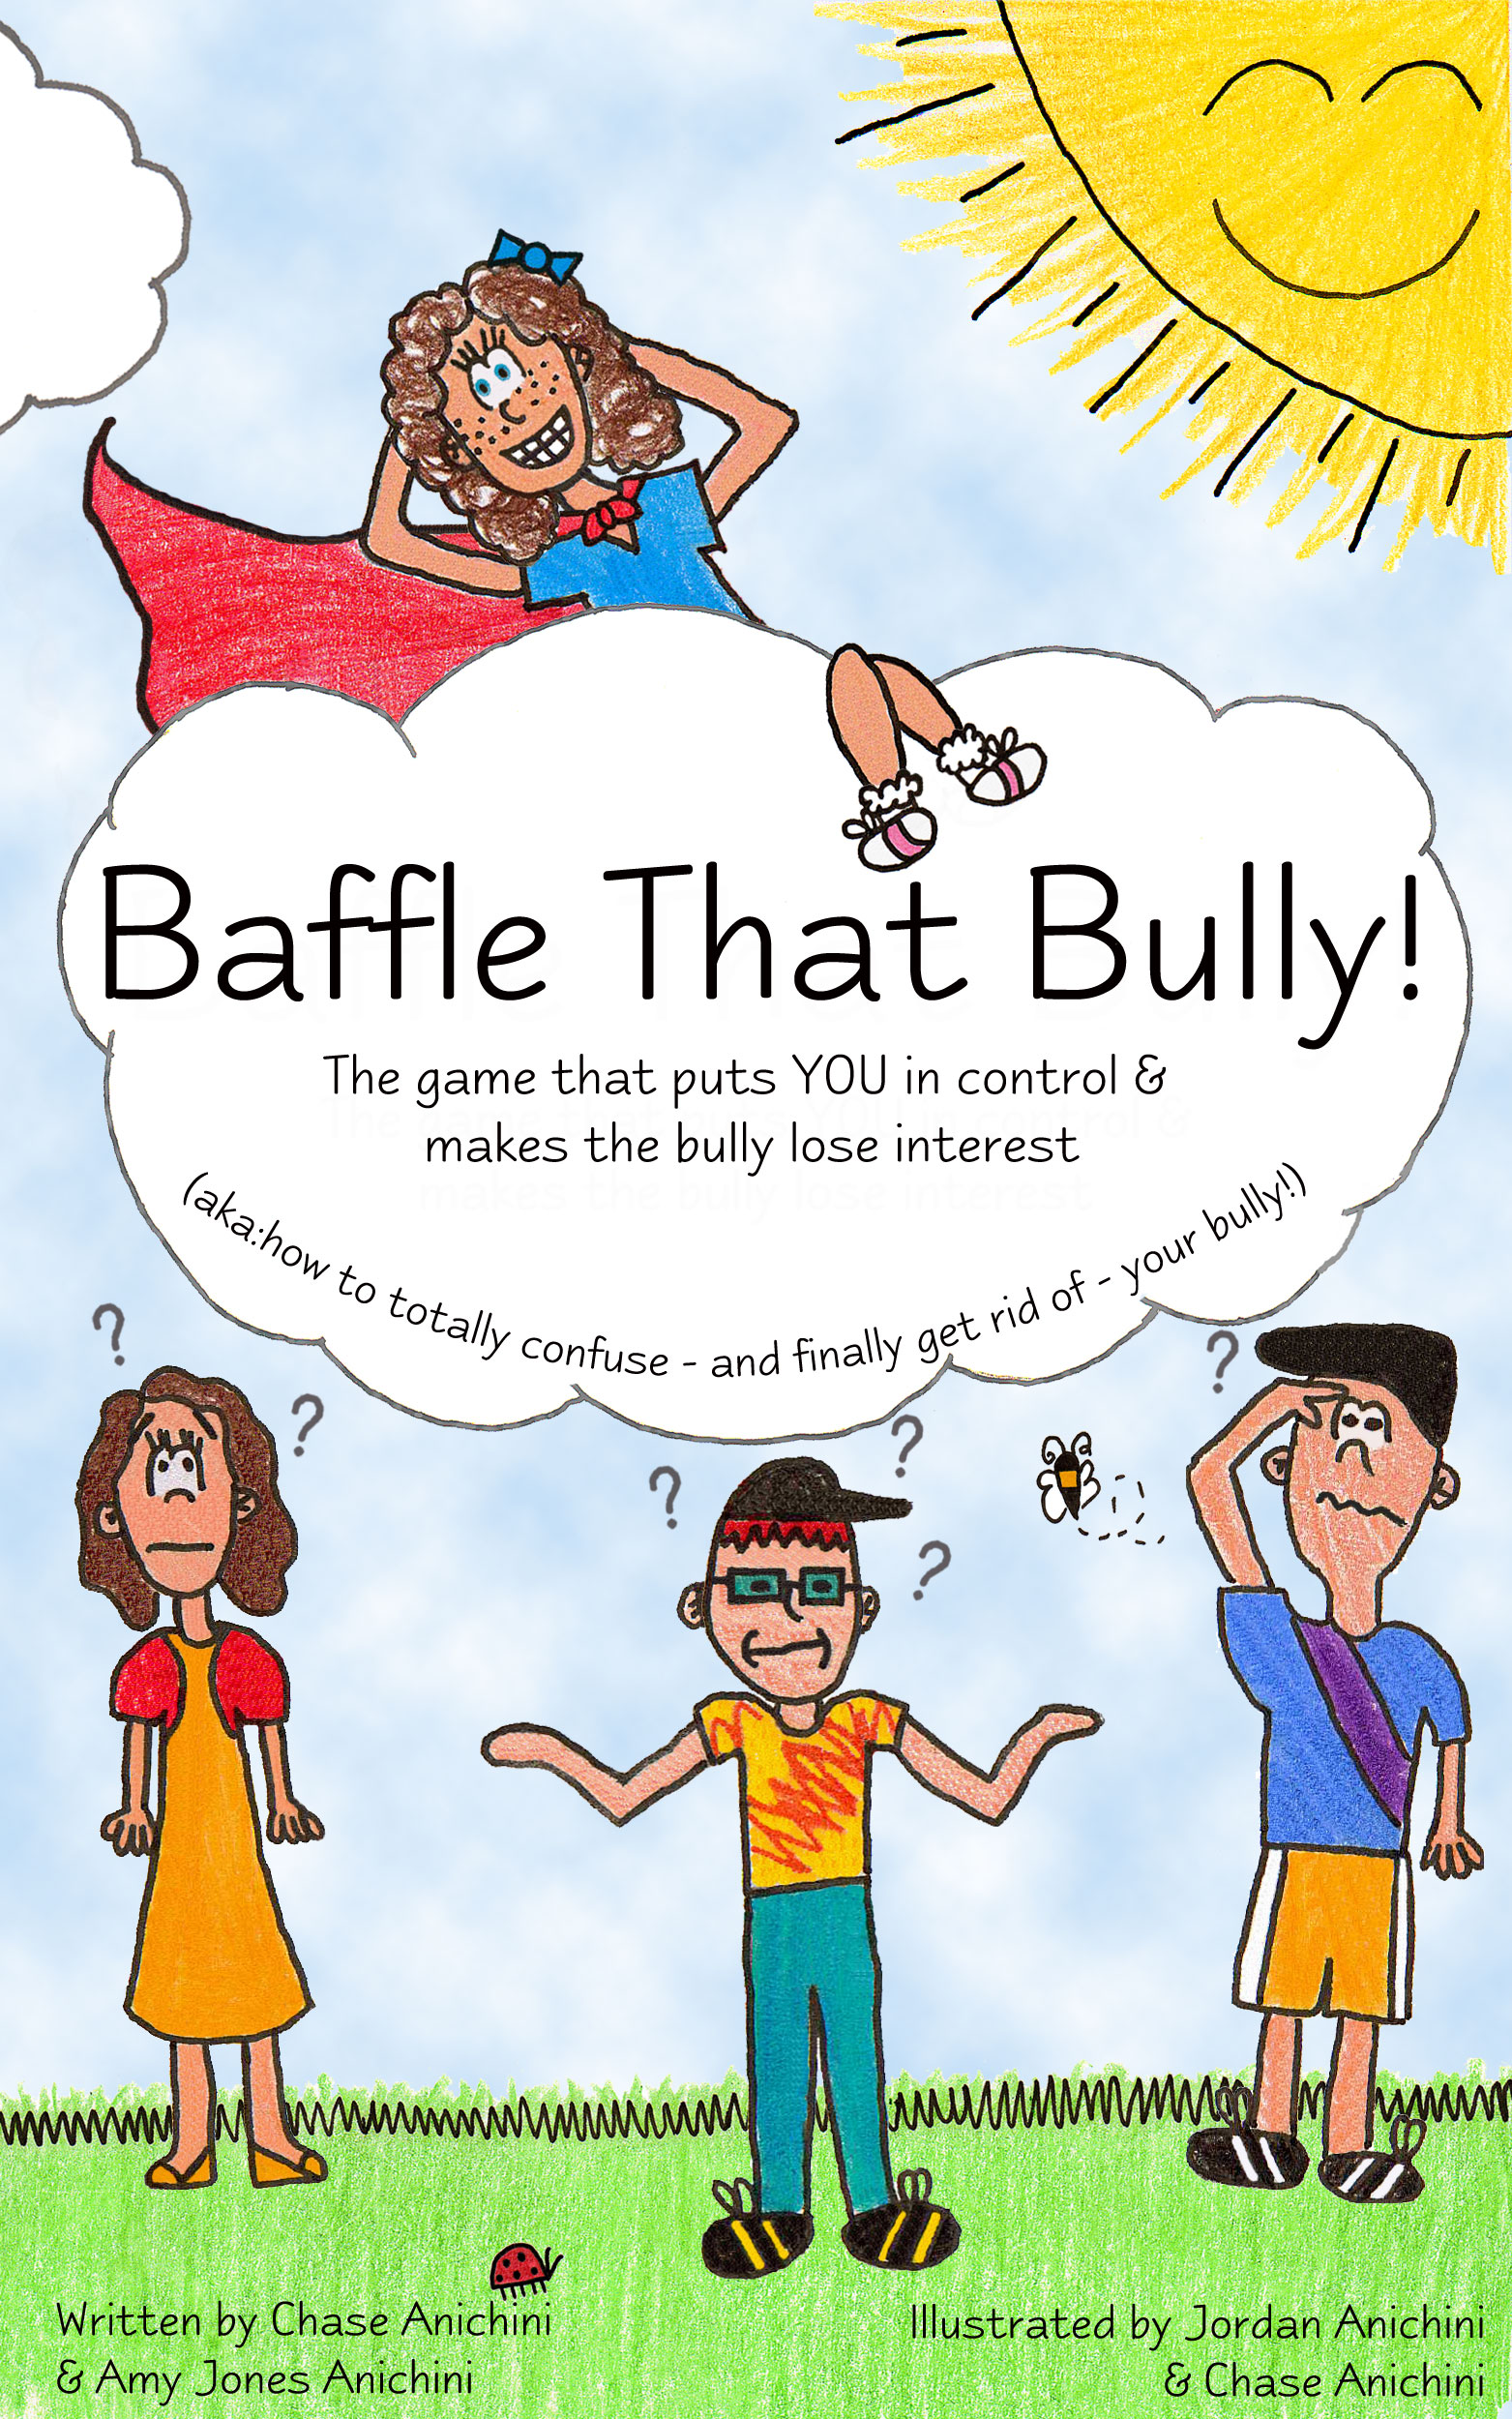 Baffle That Bully!